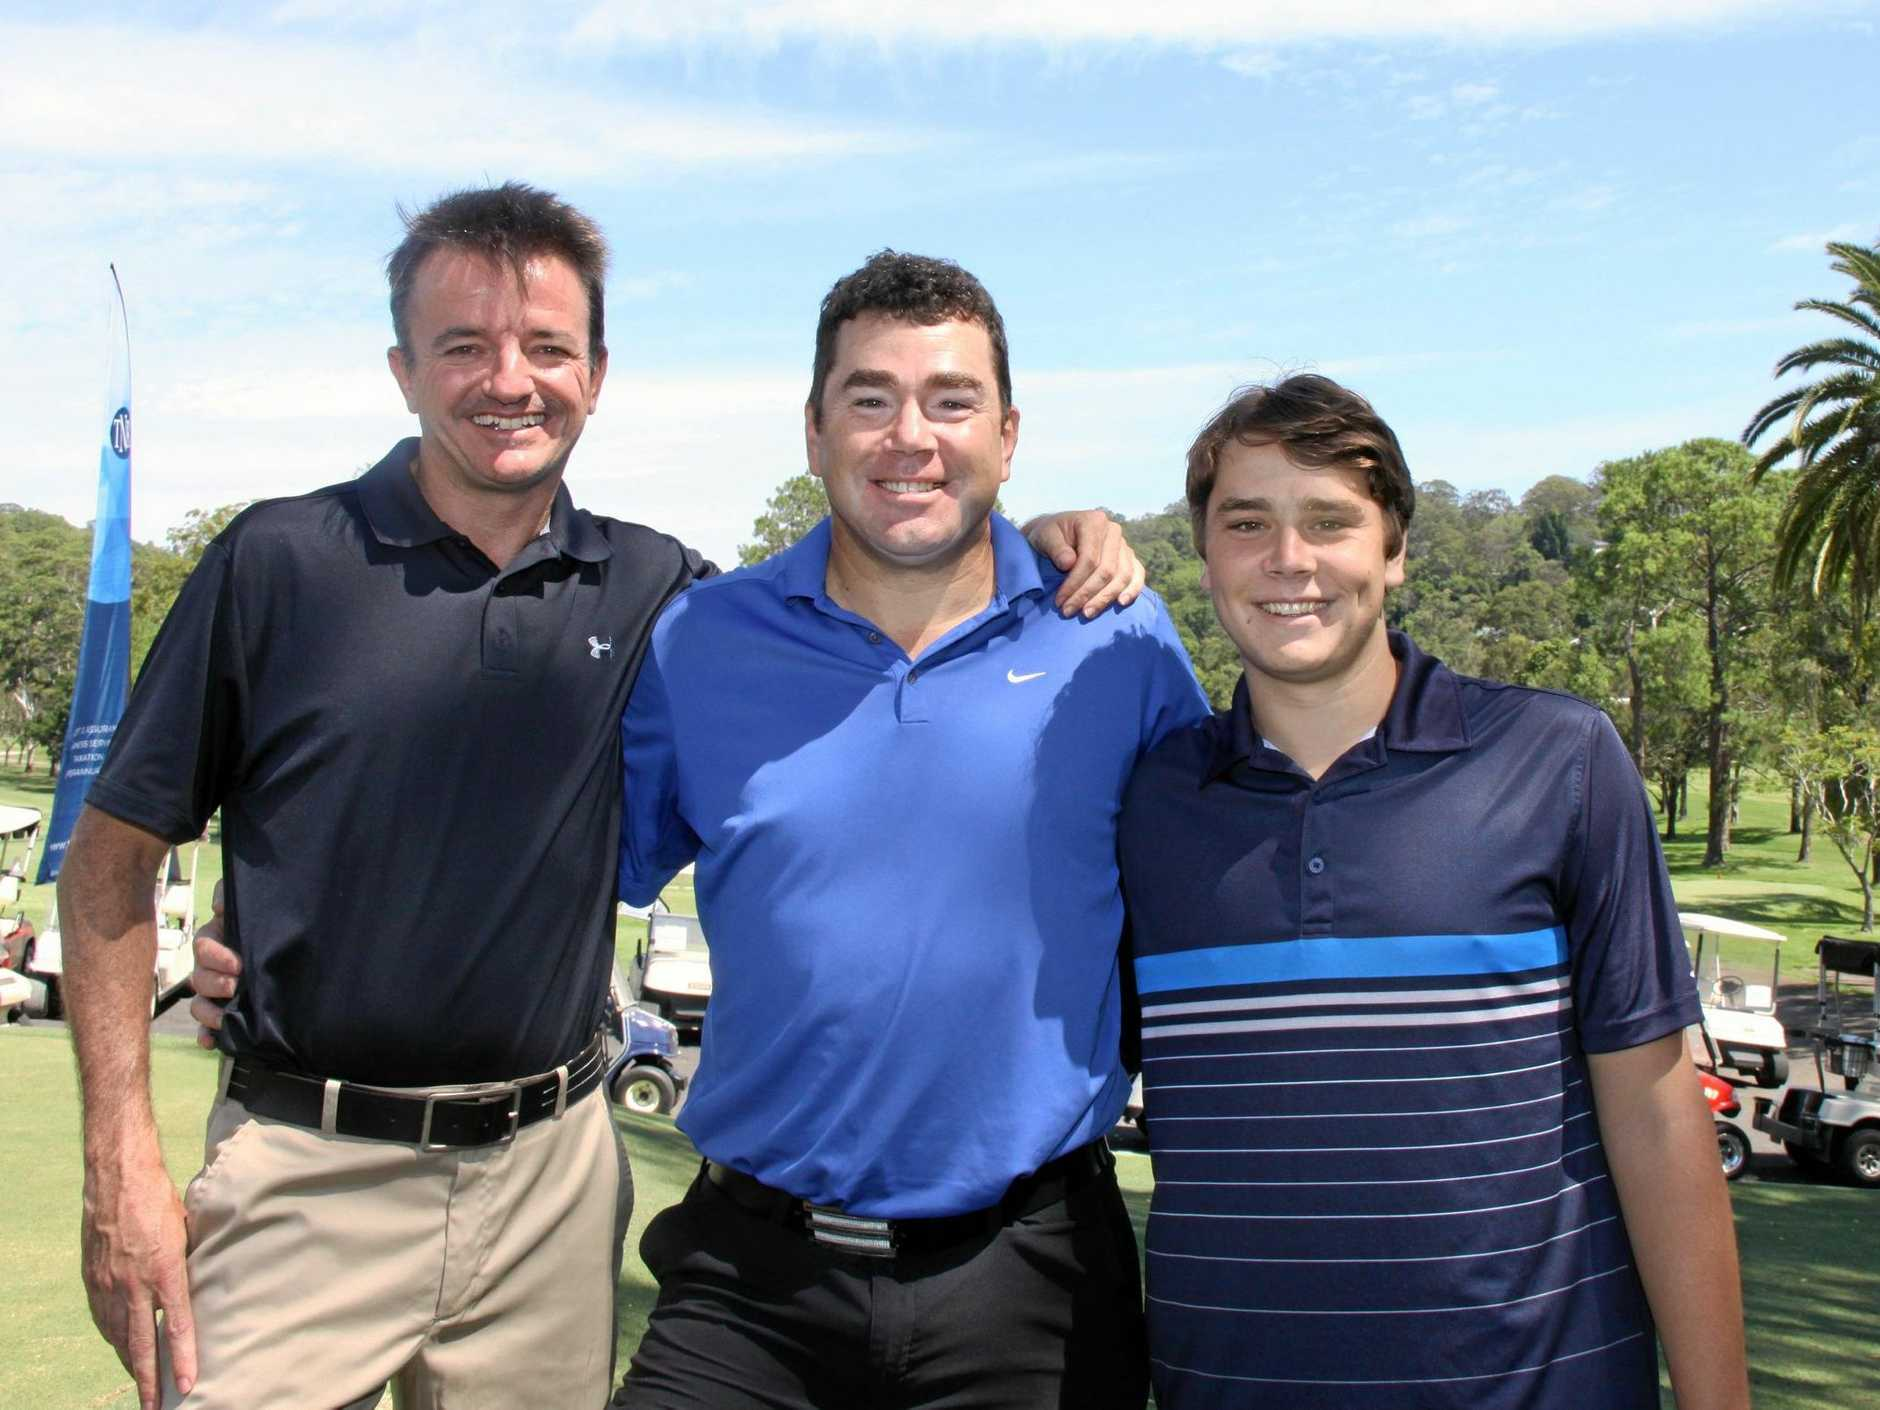 GOLF FOR GEORGIA: LWGC president Tim Gilmore with Georgia's dad Adam and older brother Nick at the fundraiser.